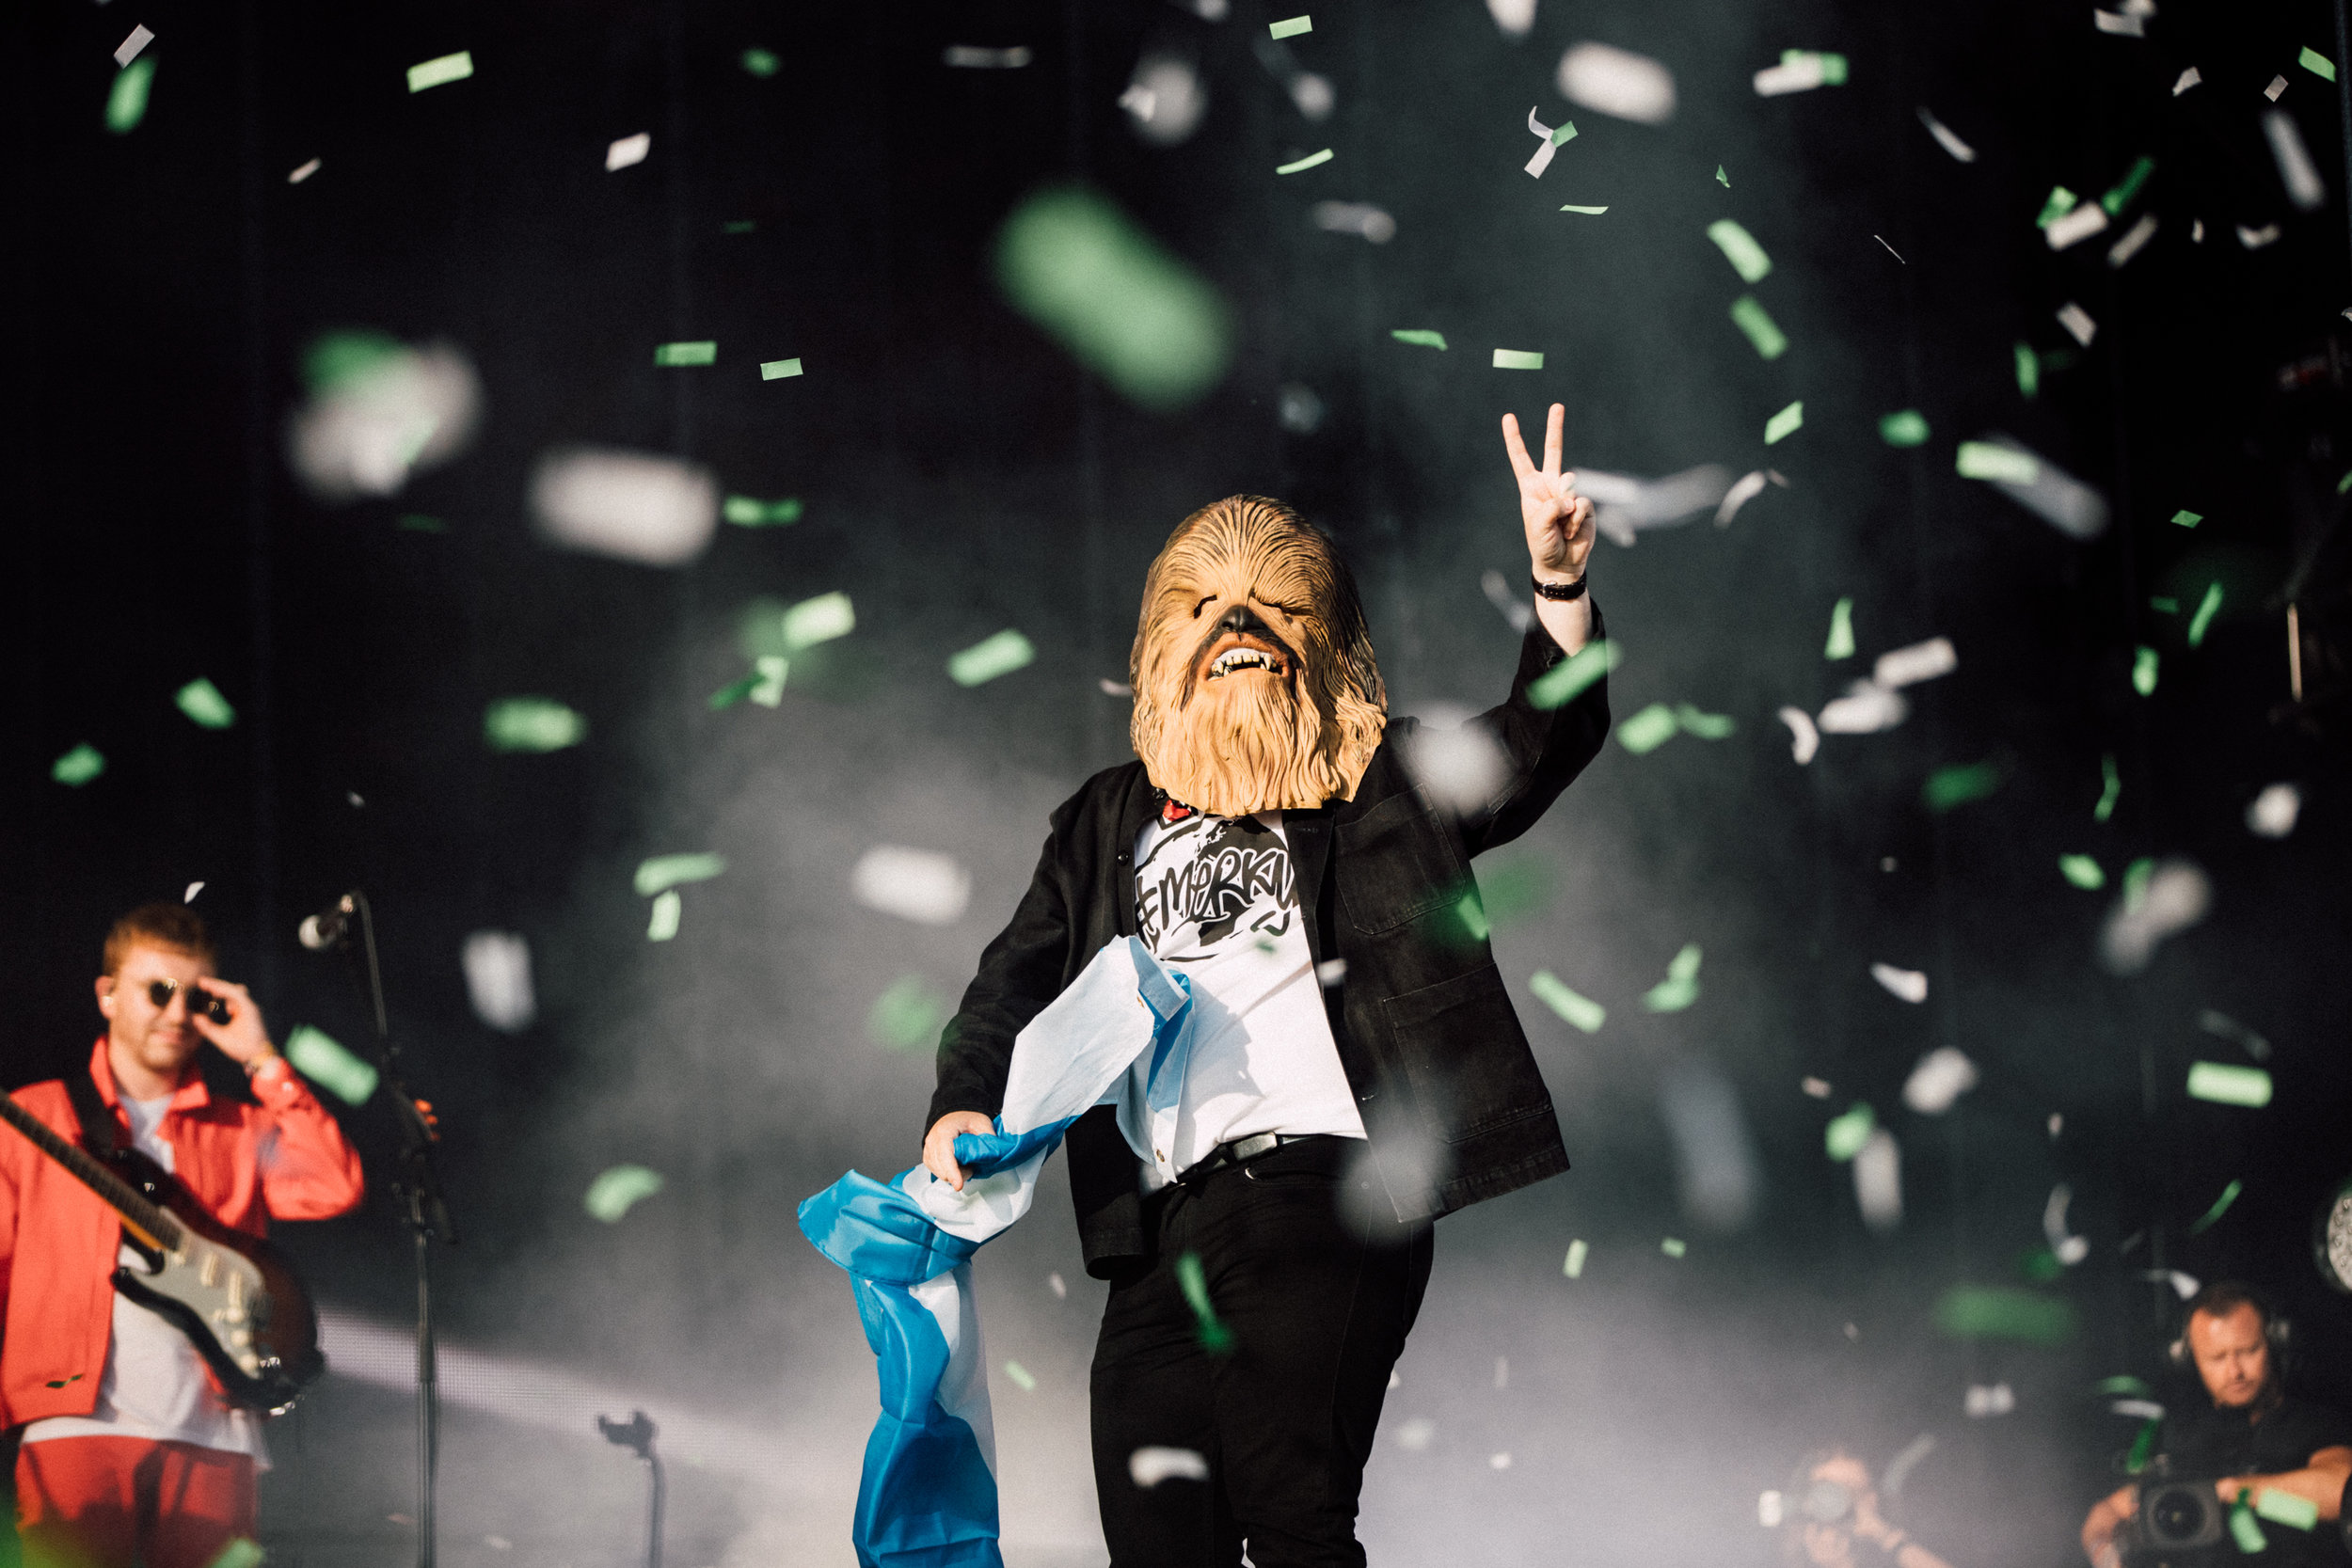 LEWIS CAPALDI APPEARING AS 'CHEWABACCA' COMING ON STAGE AT TRNSMT FESTIVAL 2019  PICTURE BY: RYAN BUCHANAN